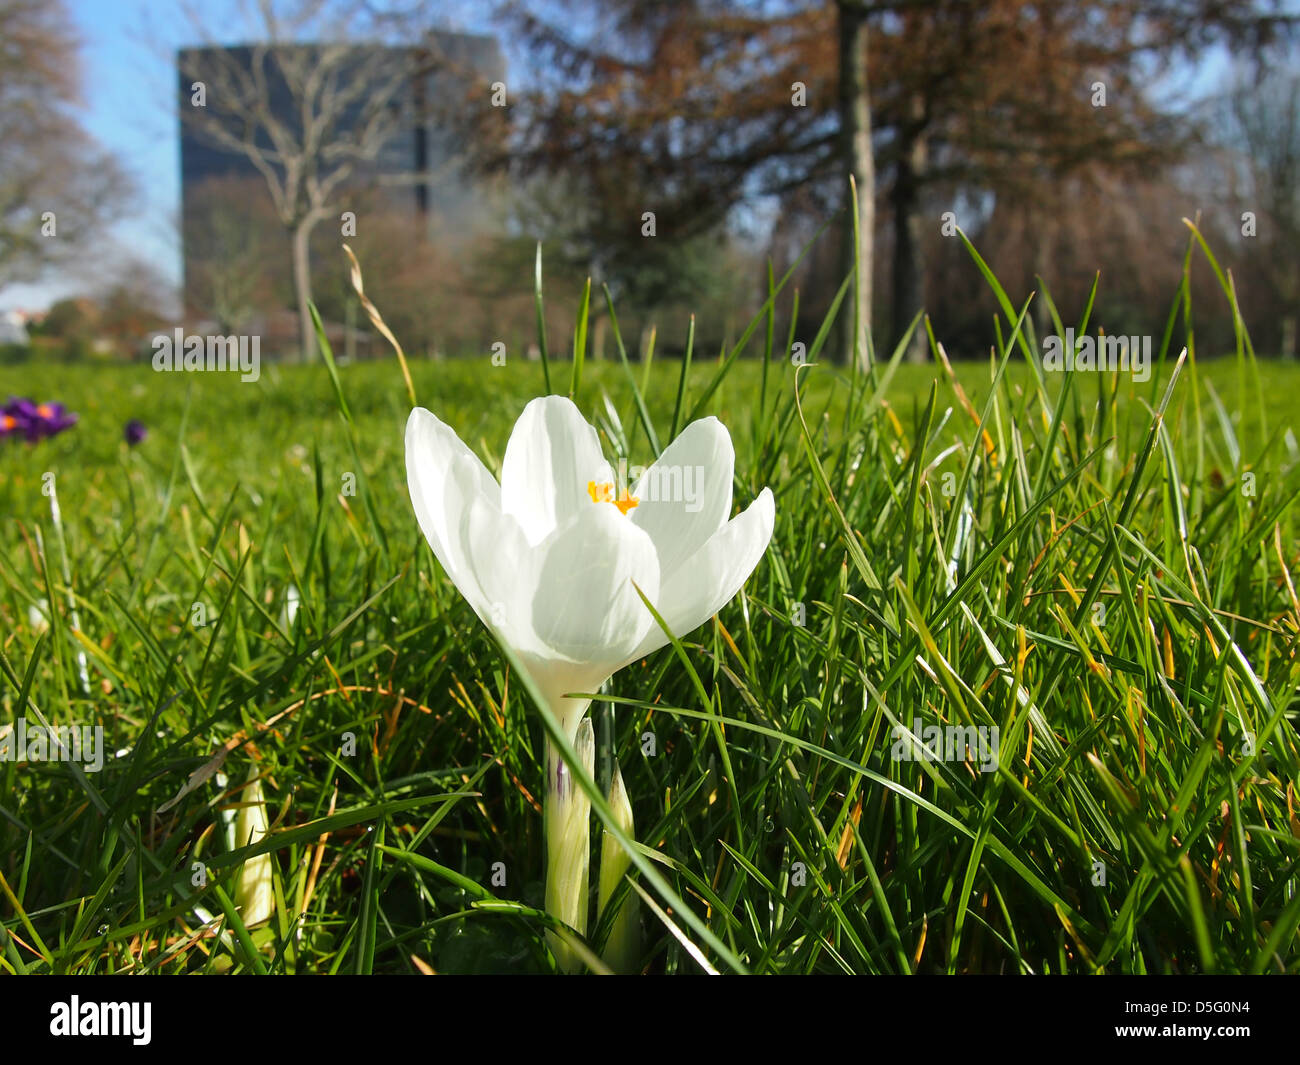 An early spring crocus flower amongst the grass in an urban park with a high rise building in the background - Stock Image